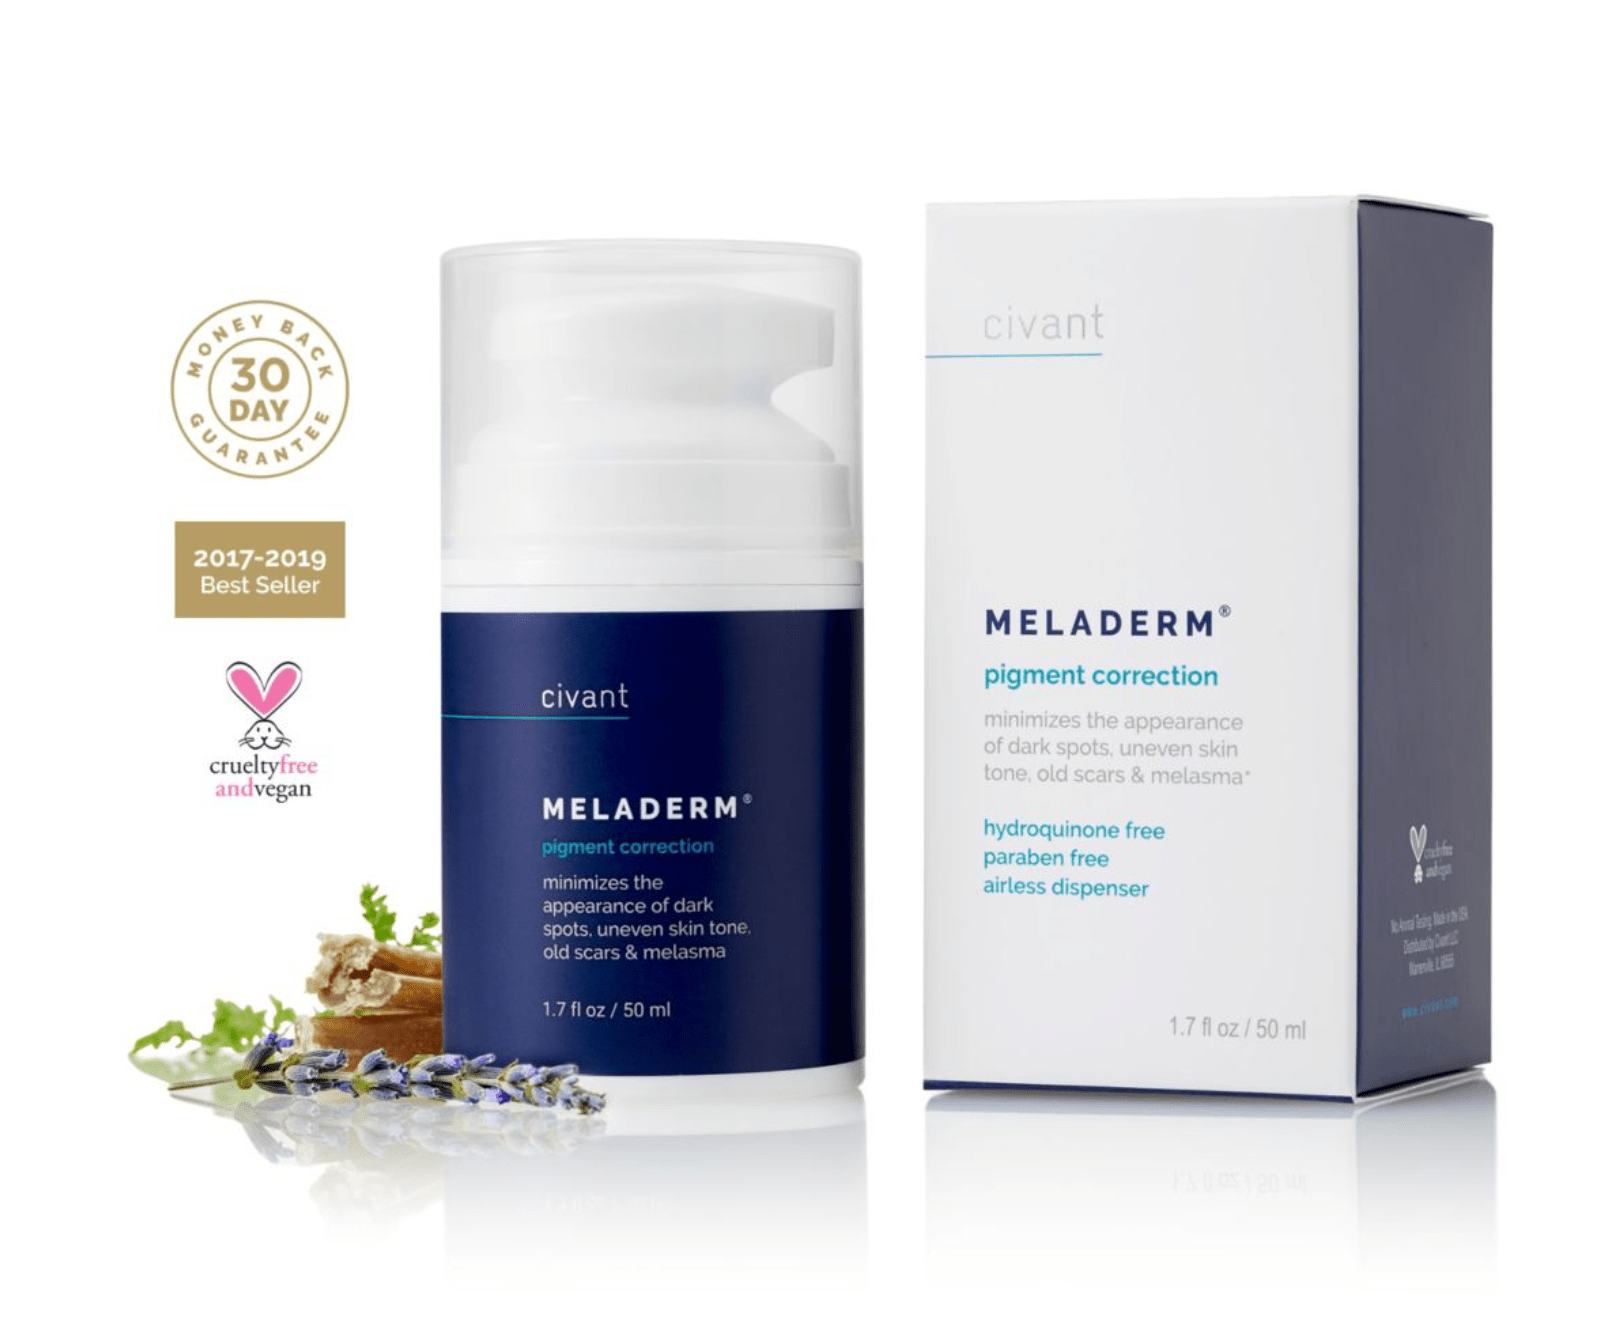 meladerm skin care products